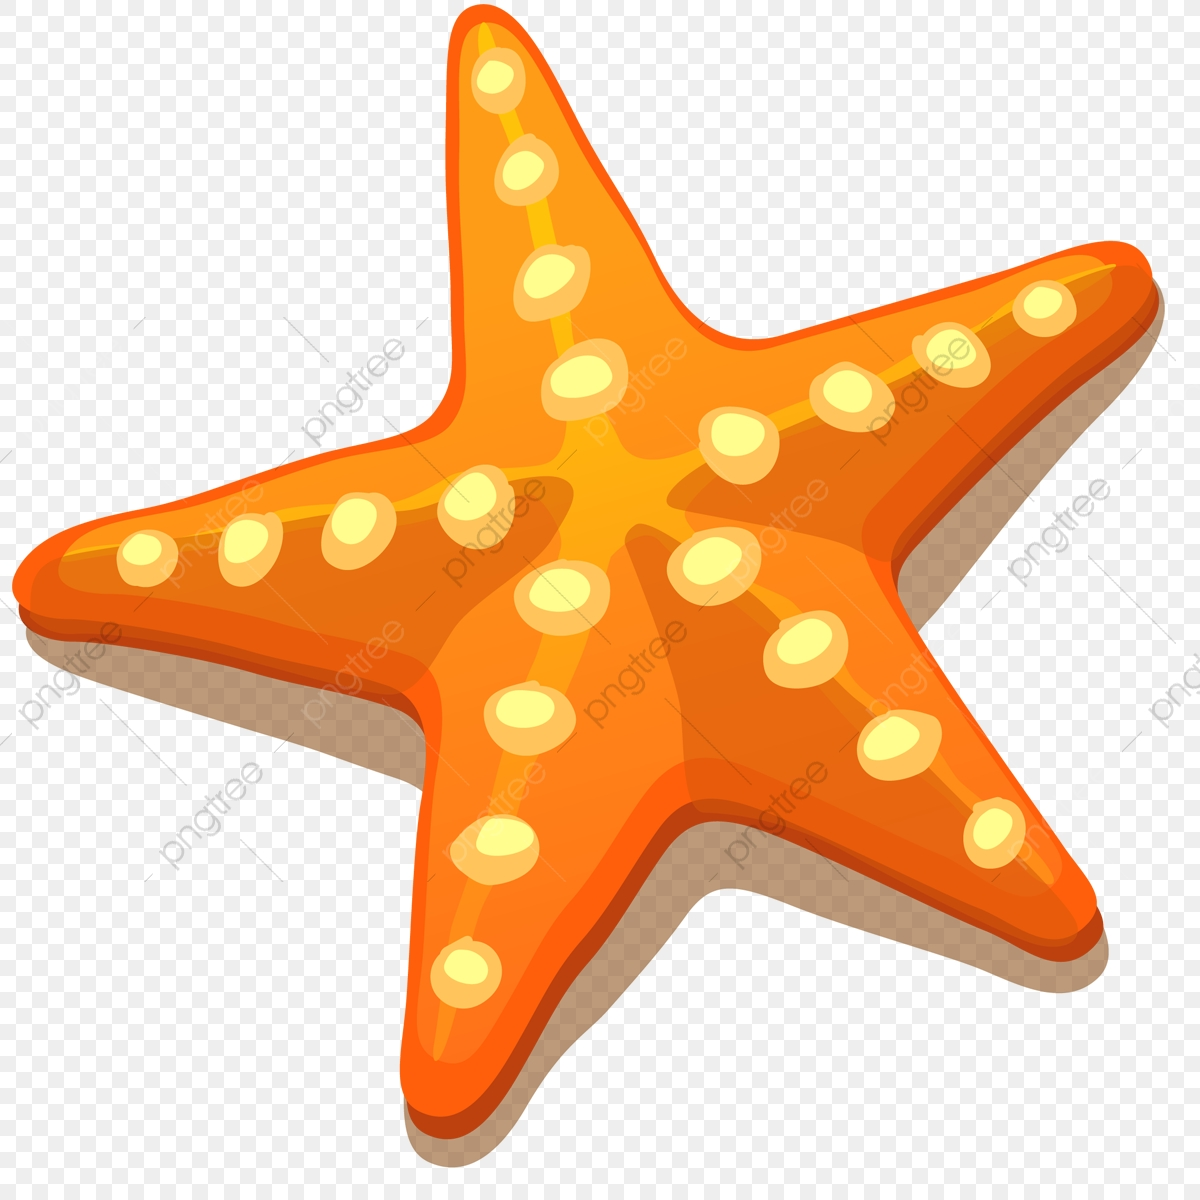 Starfish.png - Starfish, Png, Nature PNG and Vector with Transparent Background ...